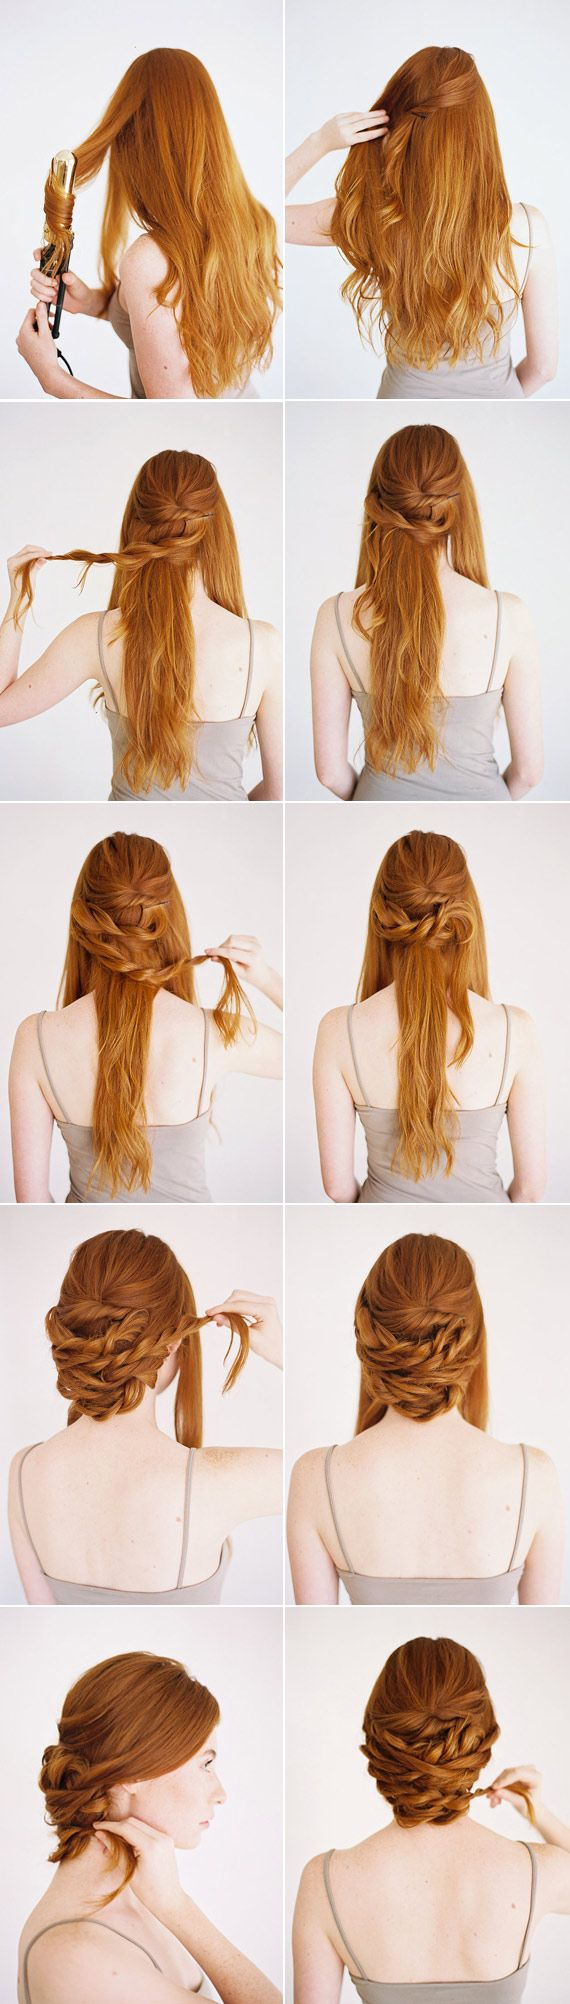 Howto Create A Low Twisted Updo  There's A Lot Of Room For Clip